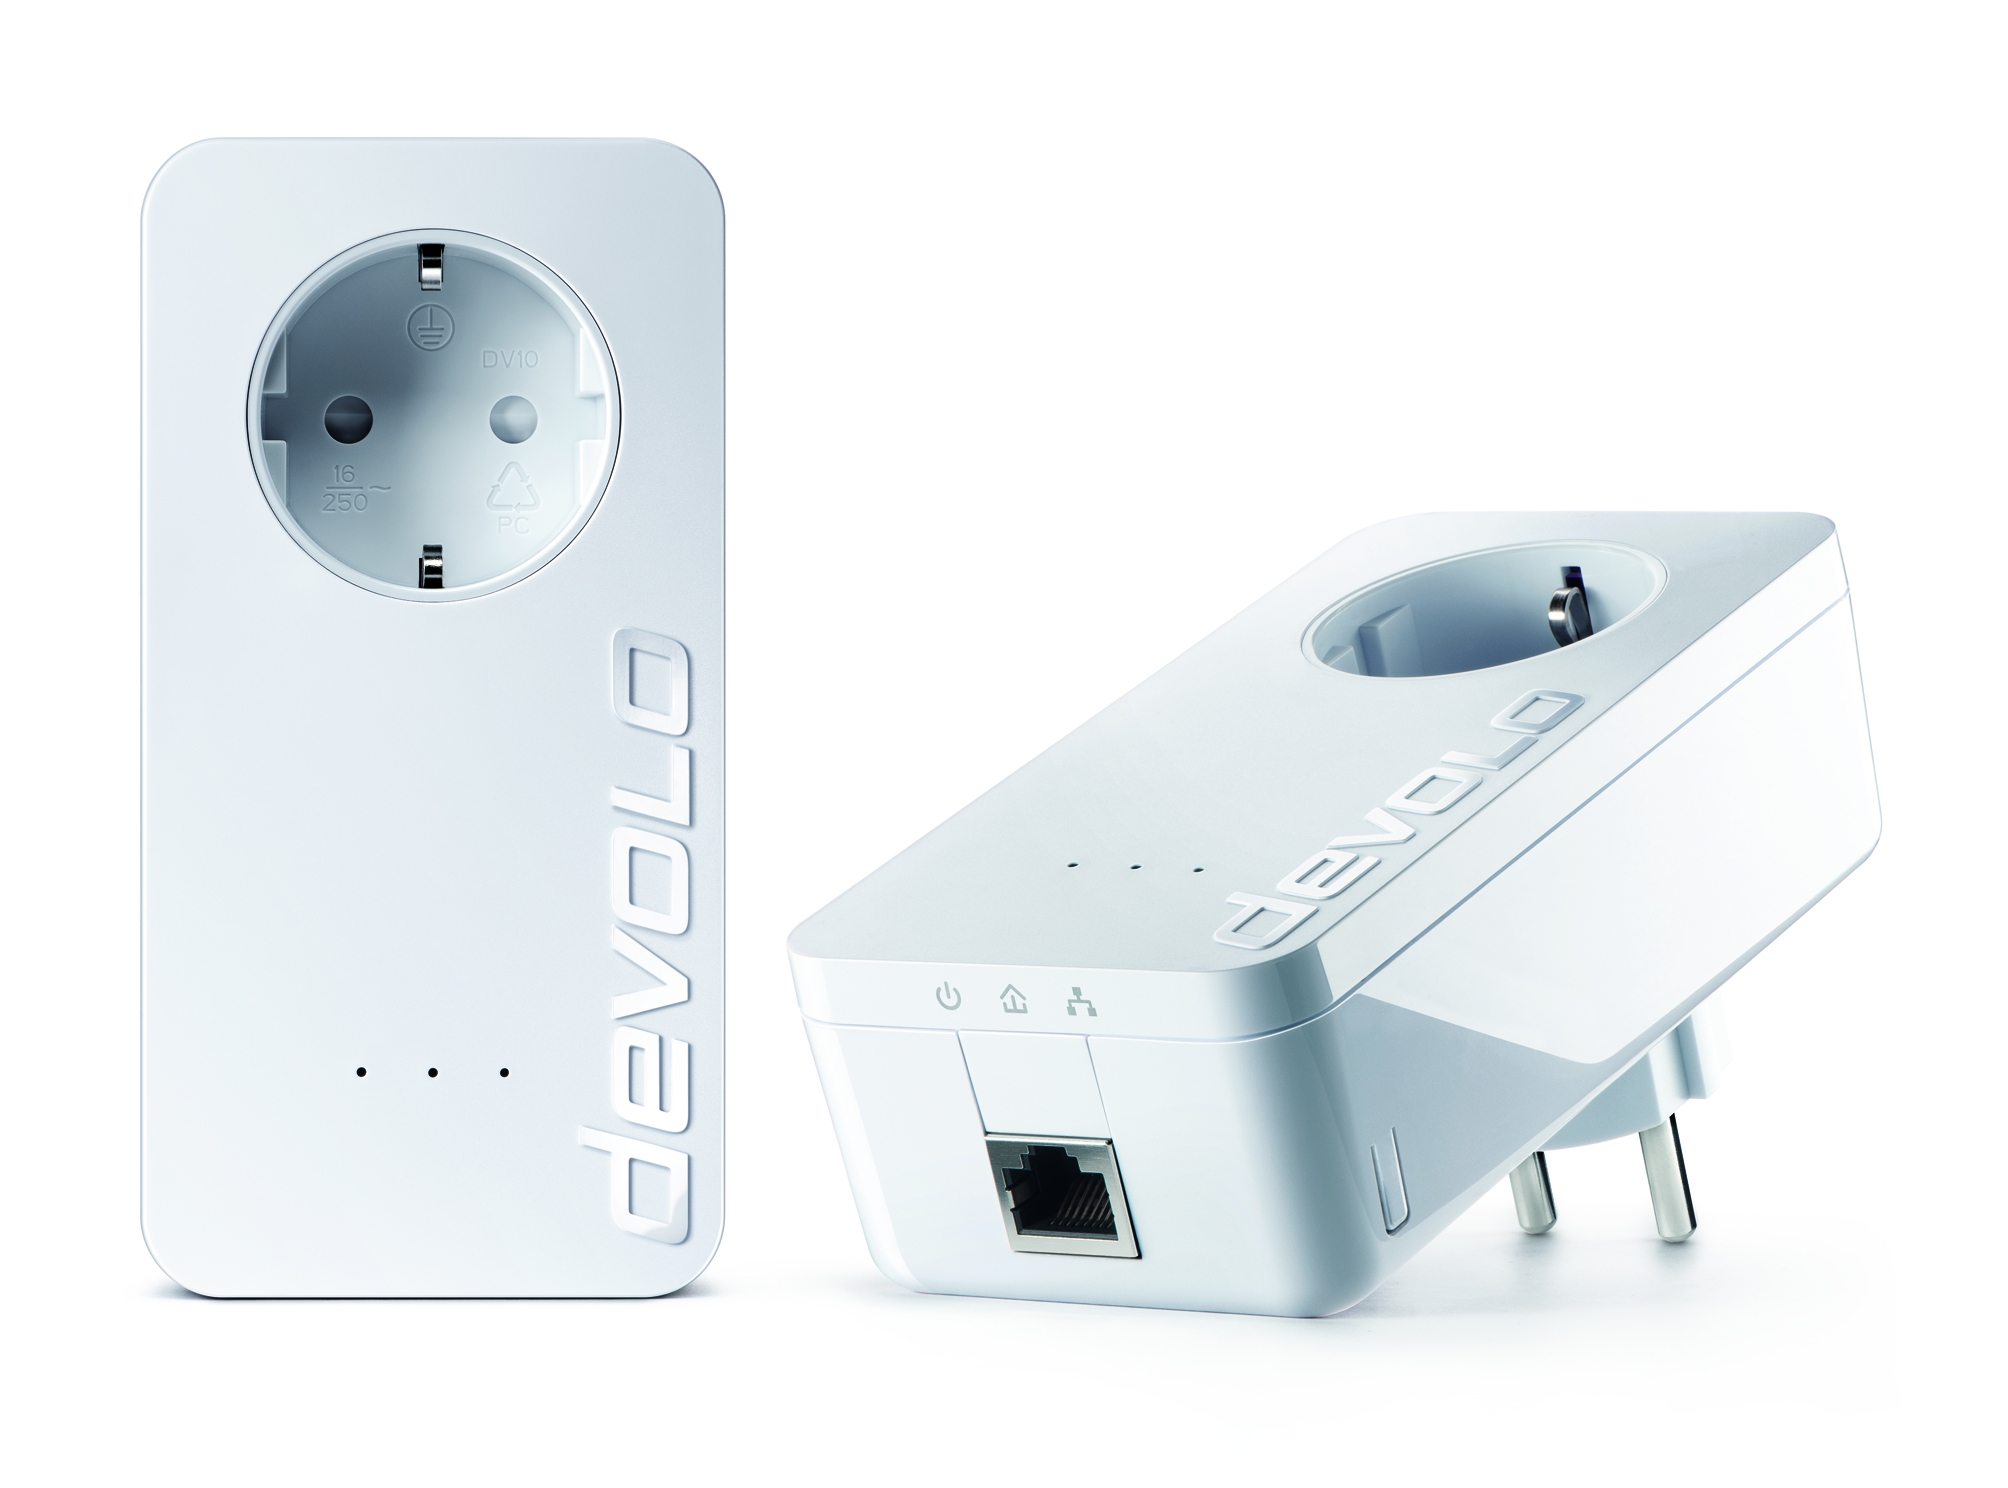 DEVOLO DLAN 650 + AV SINGLE